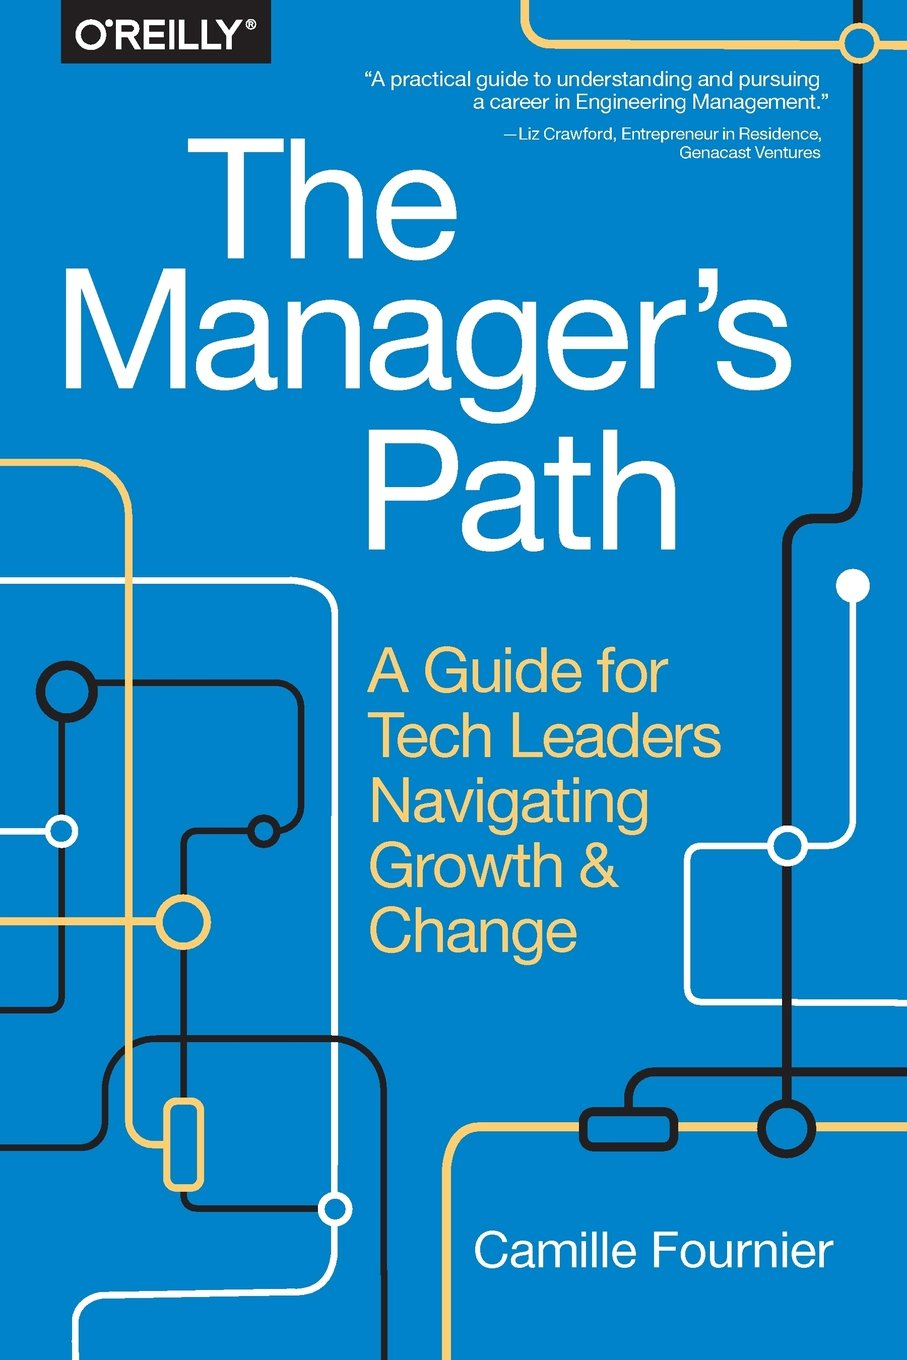 Amazon.com: The Manager's Path: A Guide for Tech Leaders Navigating Growth  and Change (9781491973899): Camille Fournier: Books